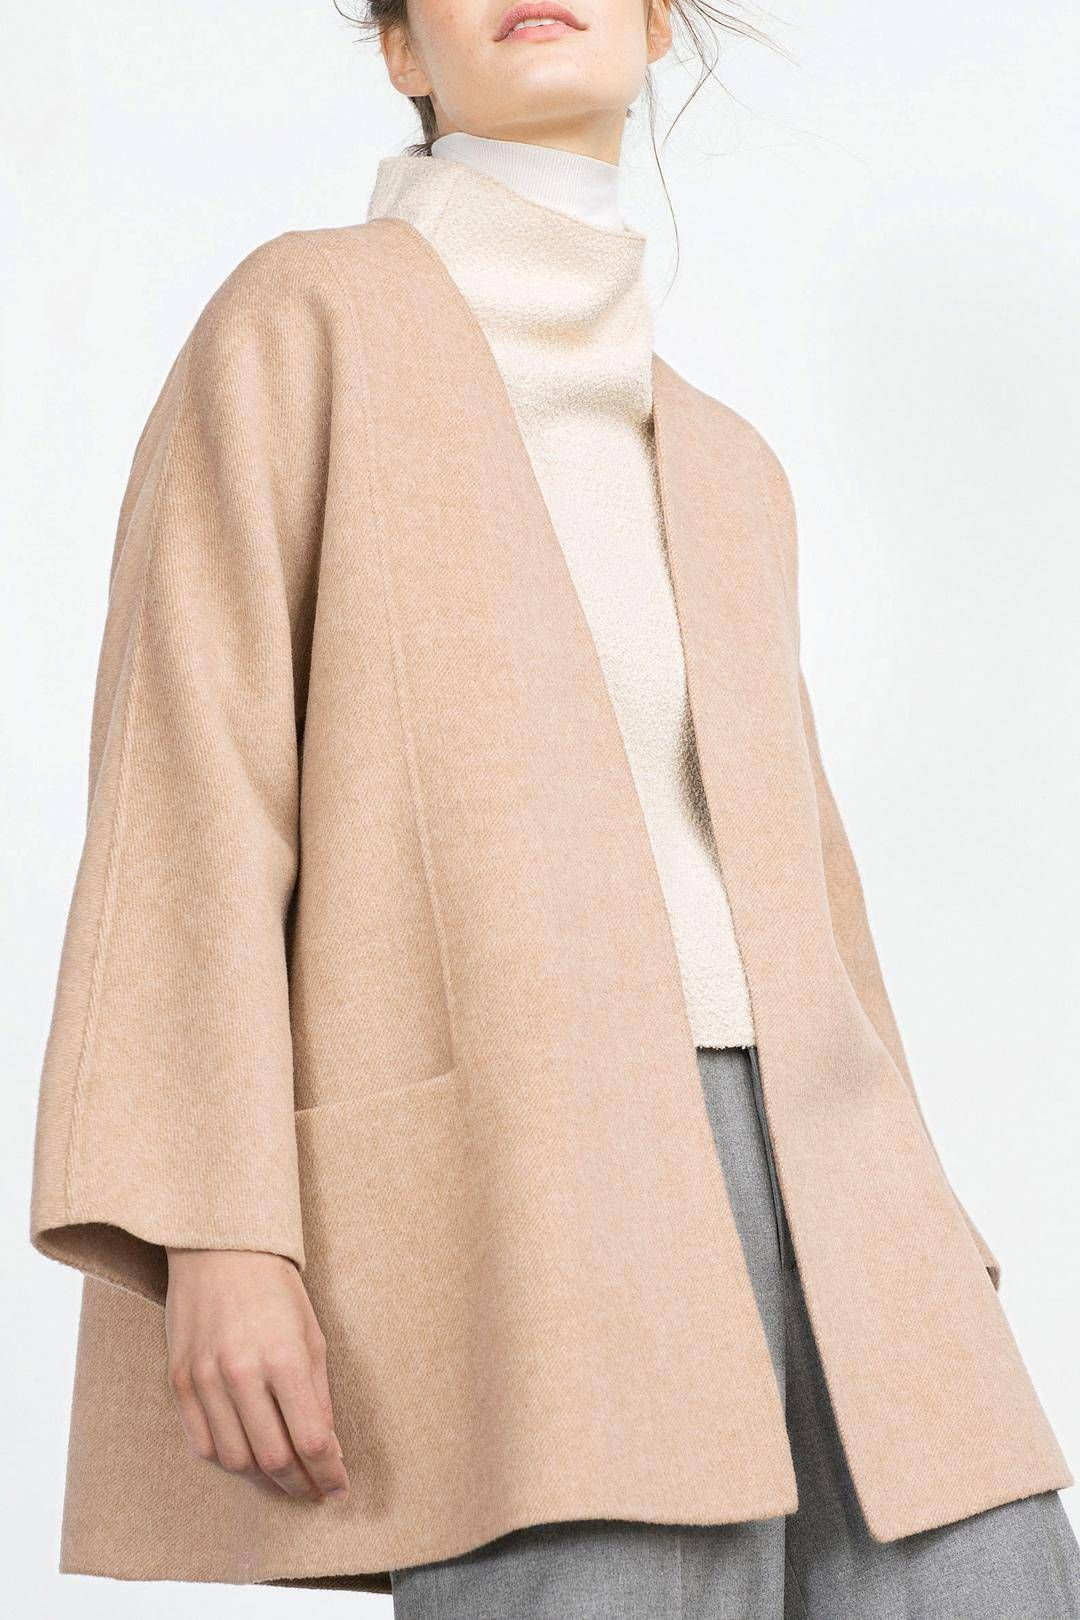 Duffle Coat with Pocket – US$49.95